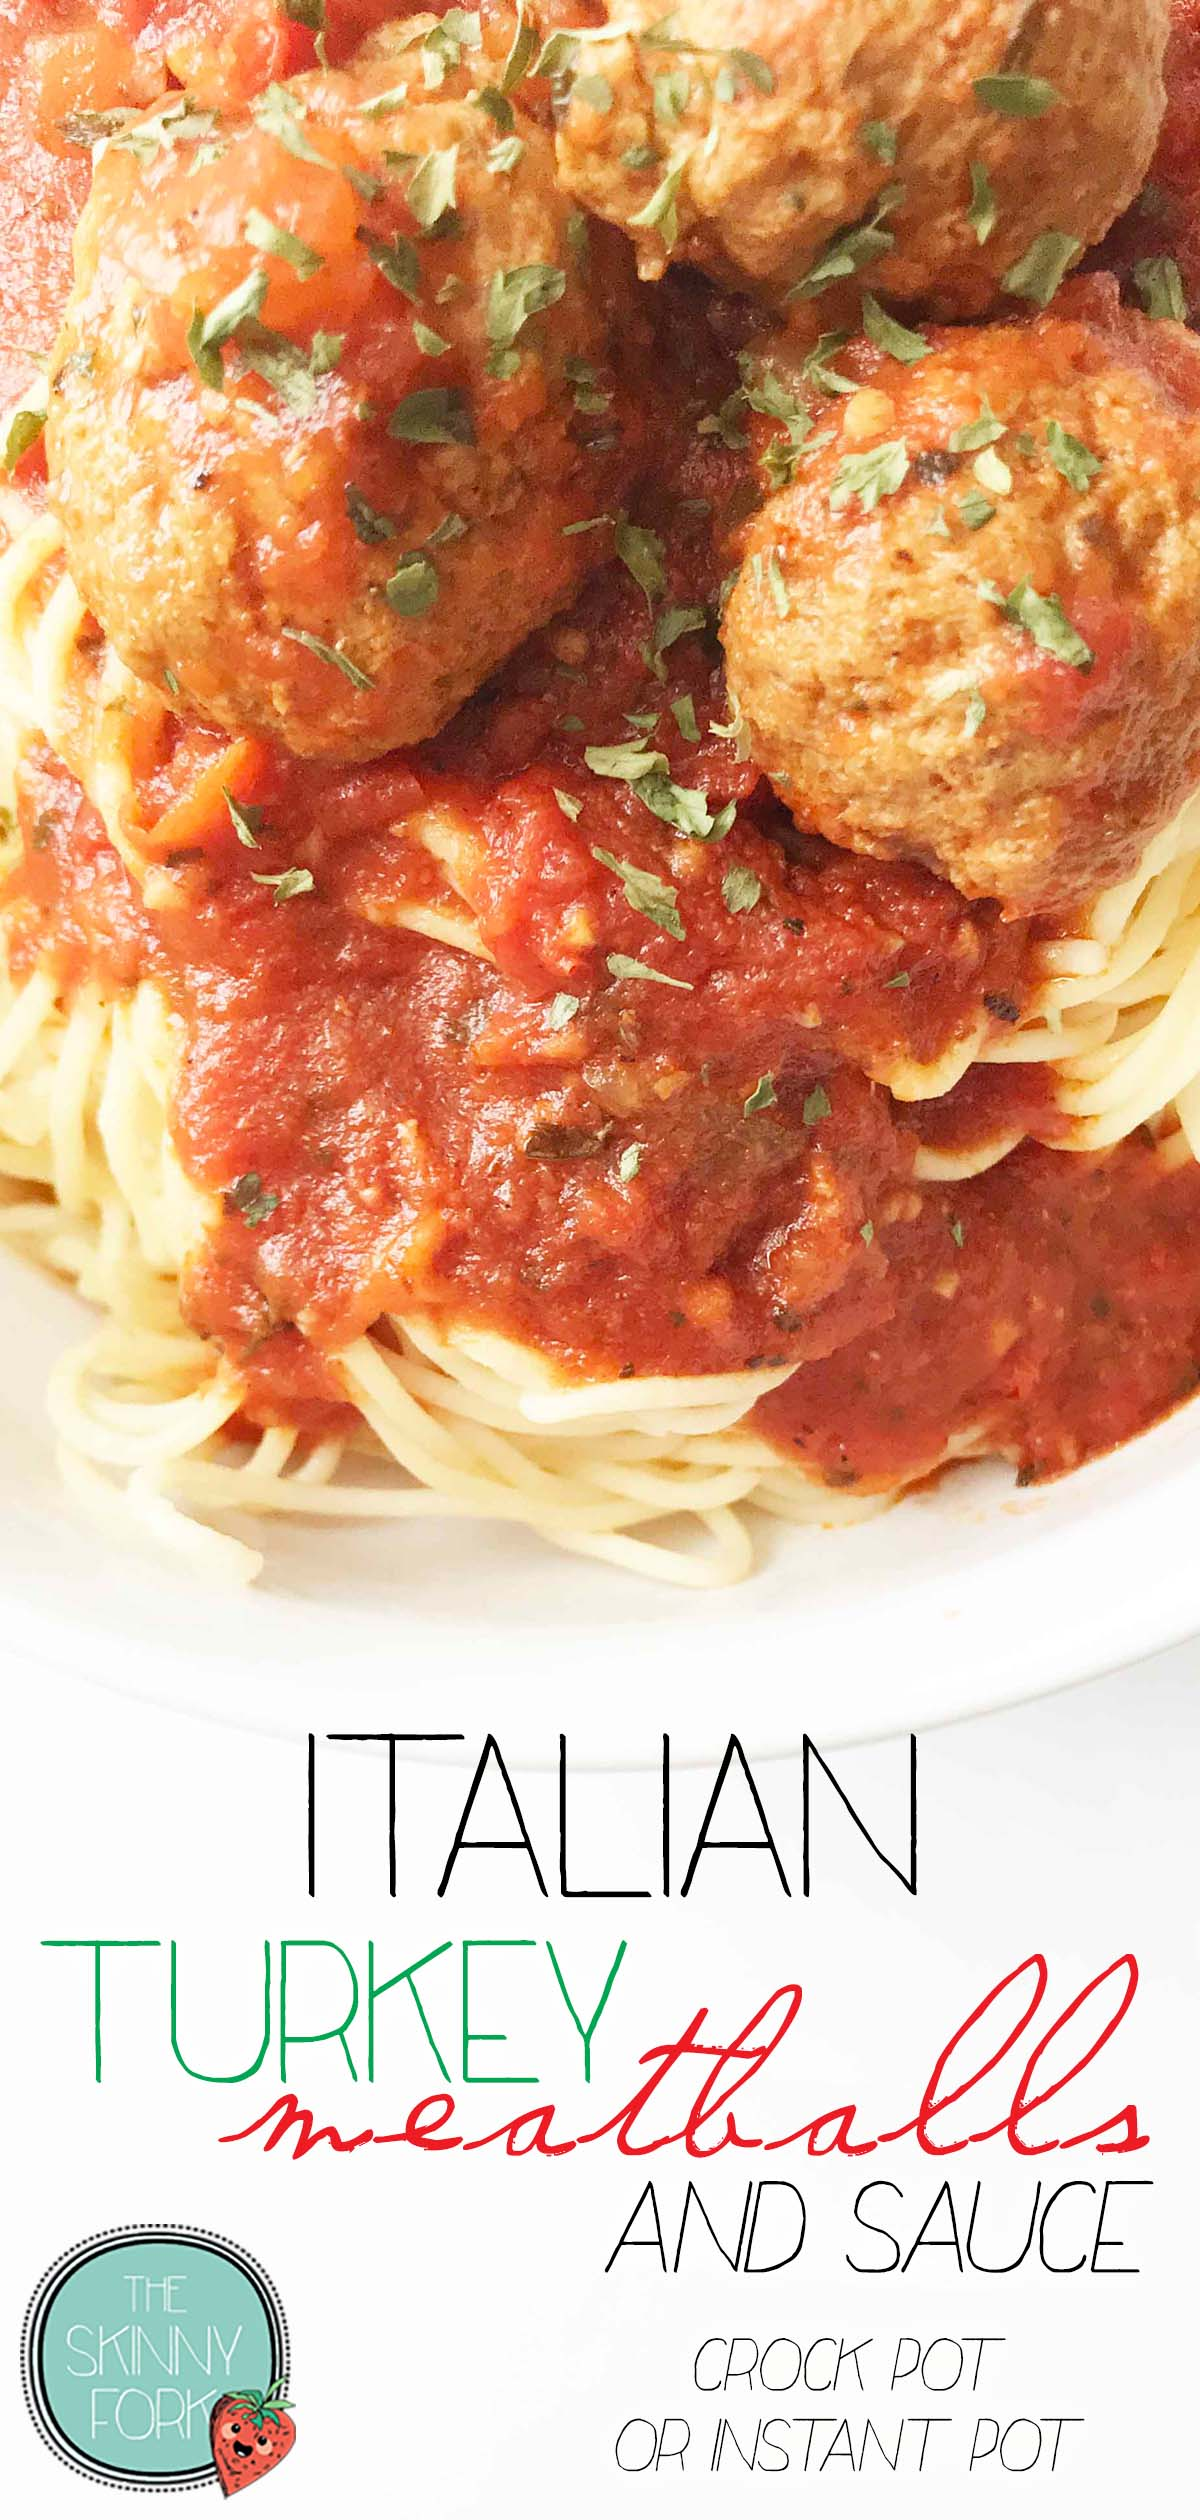 Italian Turkey Meatballs & Sauce (Crock Pot or Instant Pot)